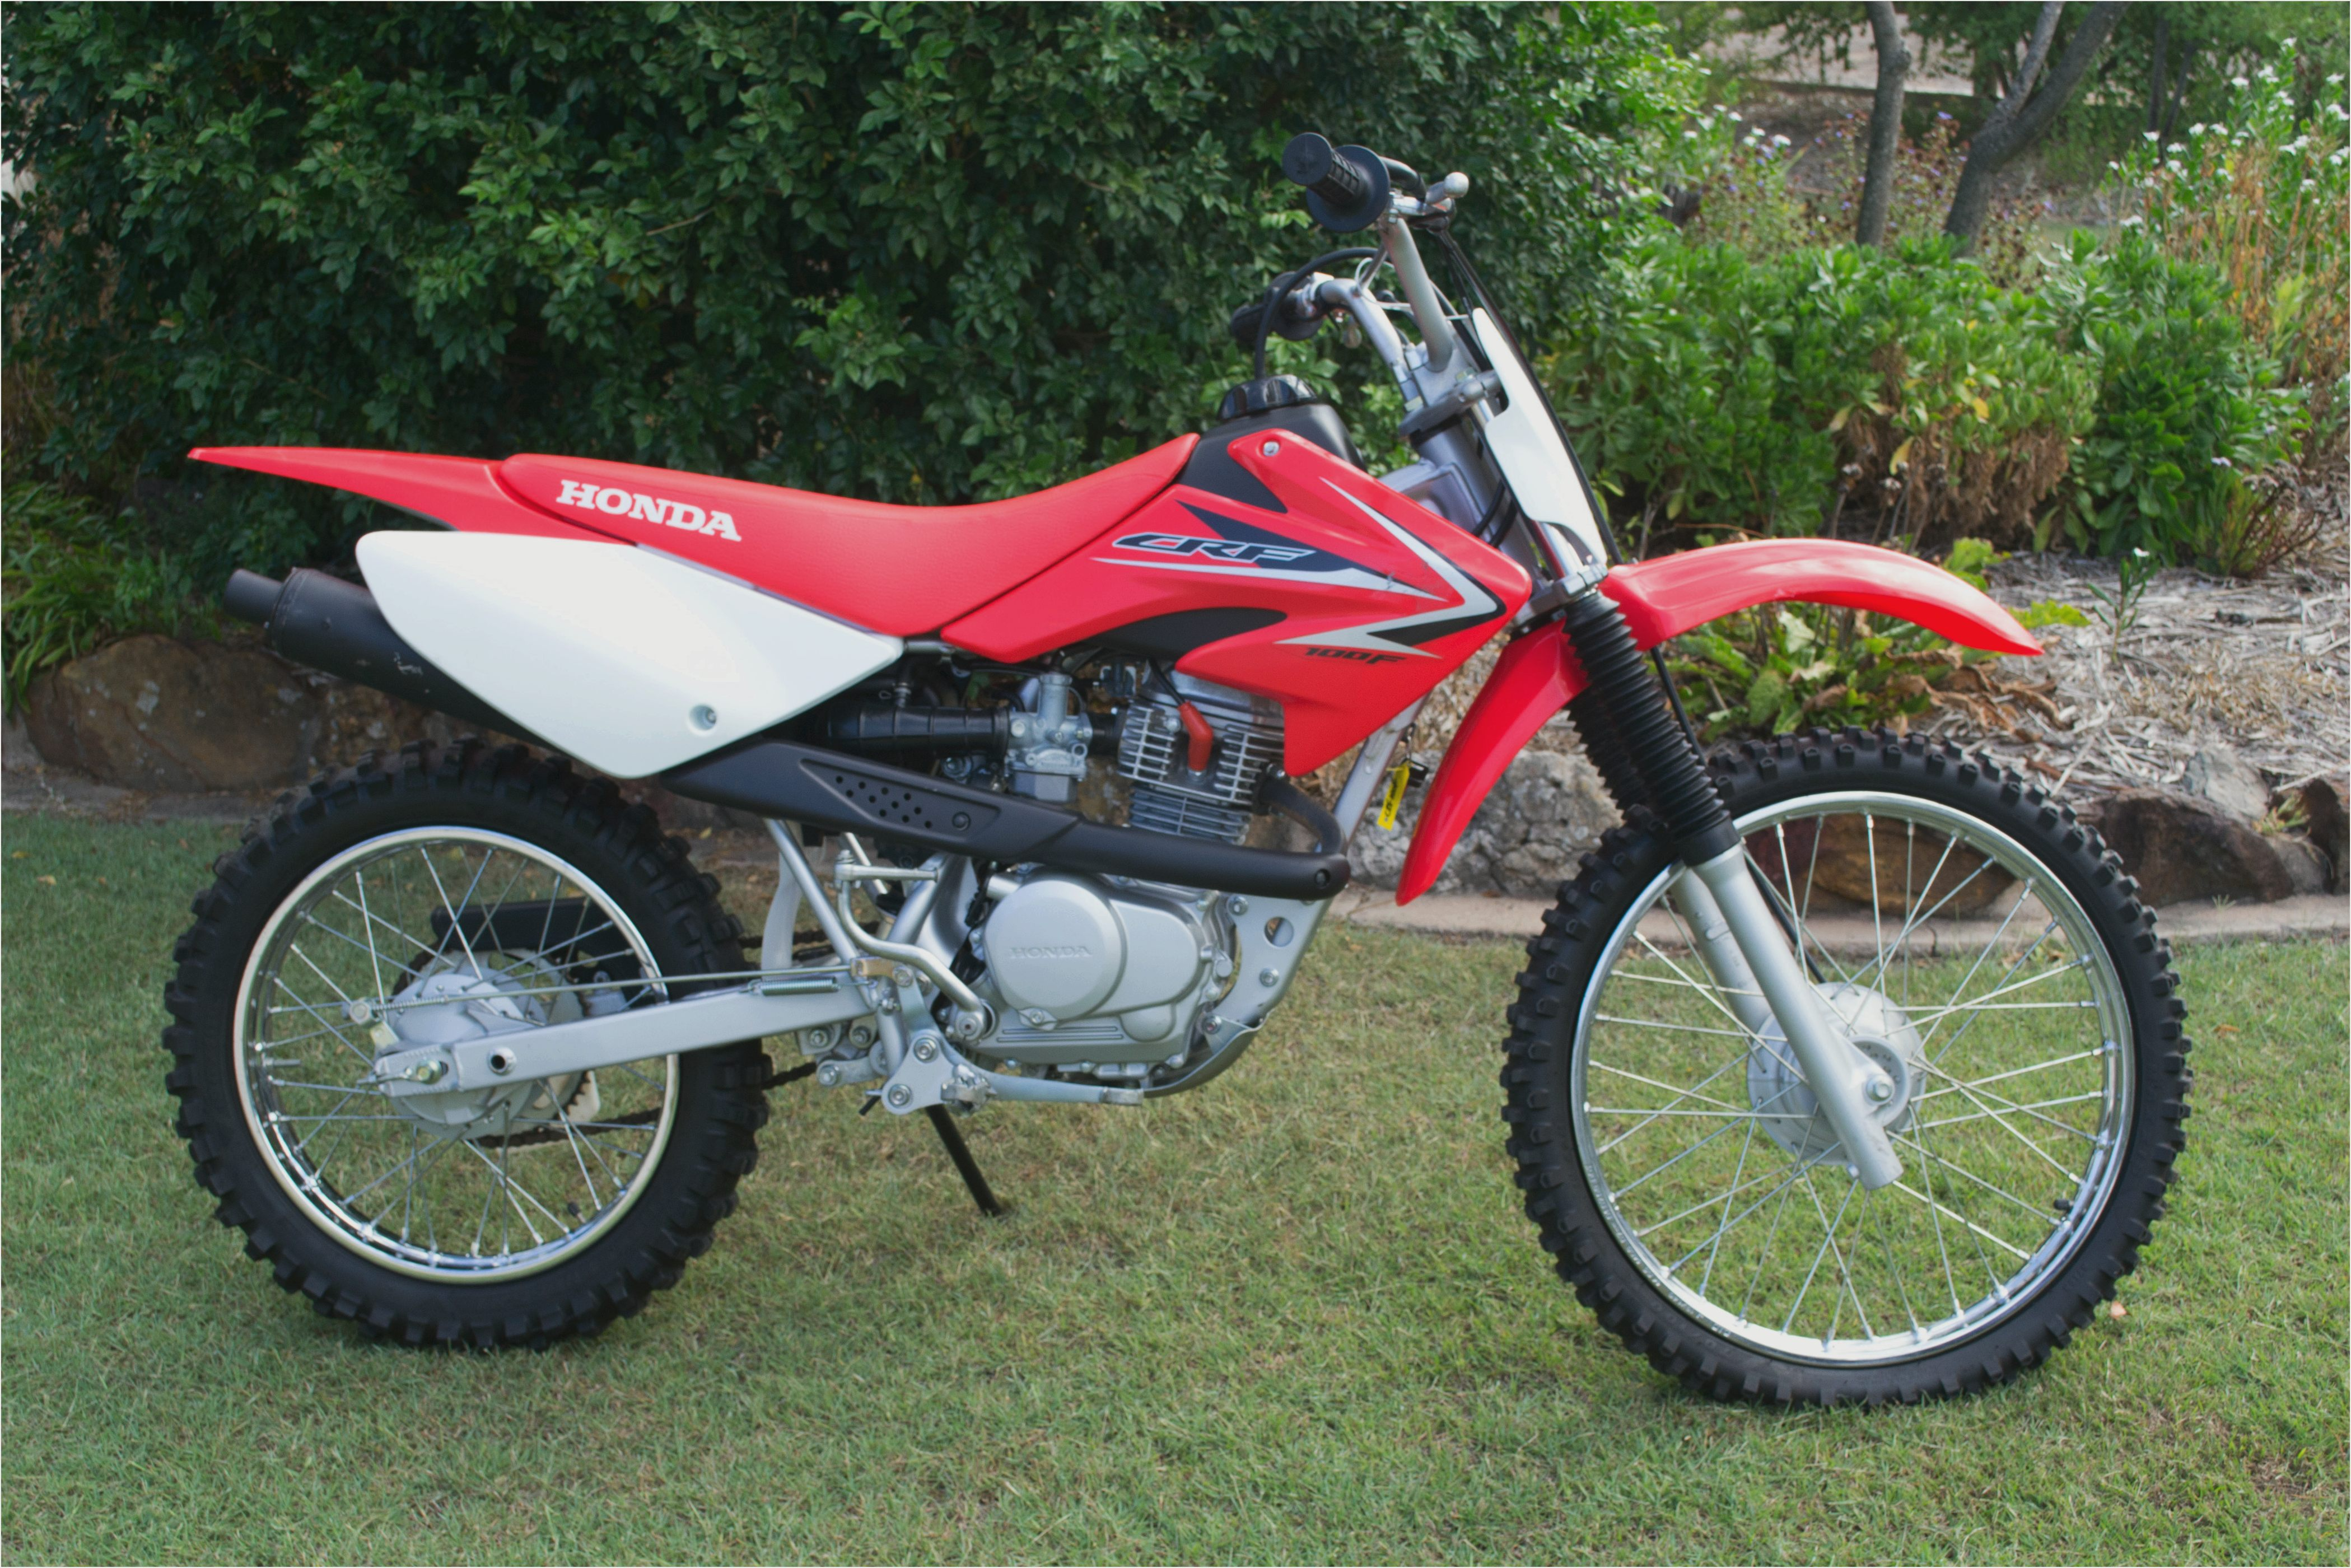 Honda Crf 100 F Pics Specs And List Of Seriess By Year Onlymotorbikes Com